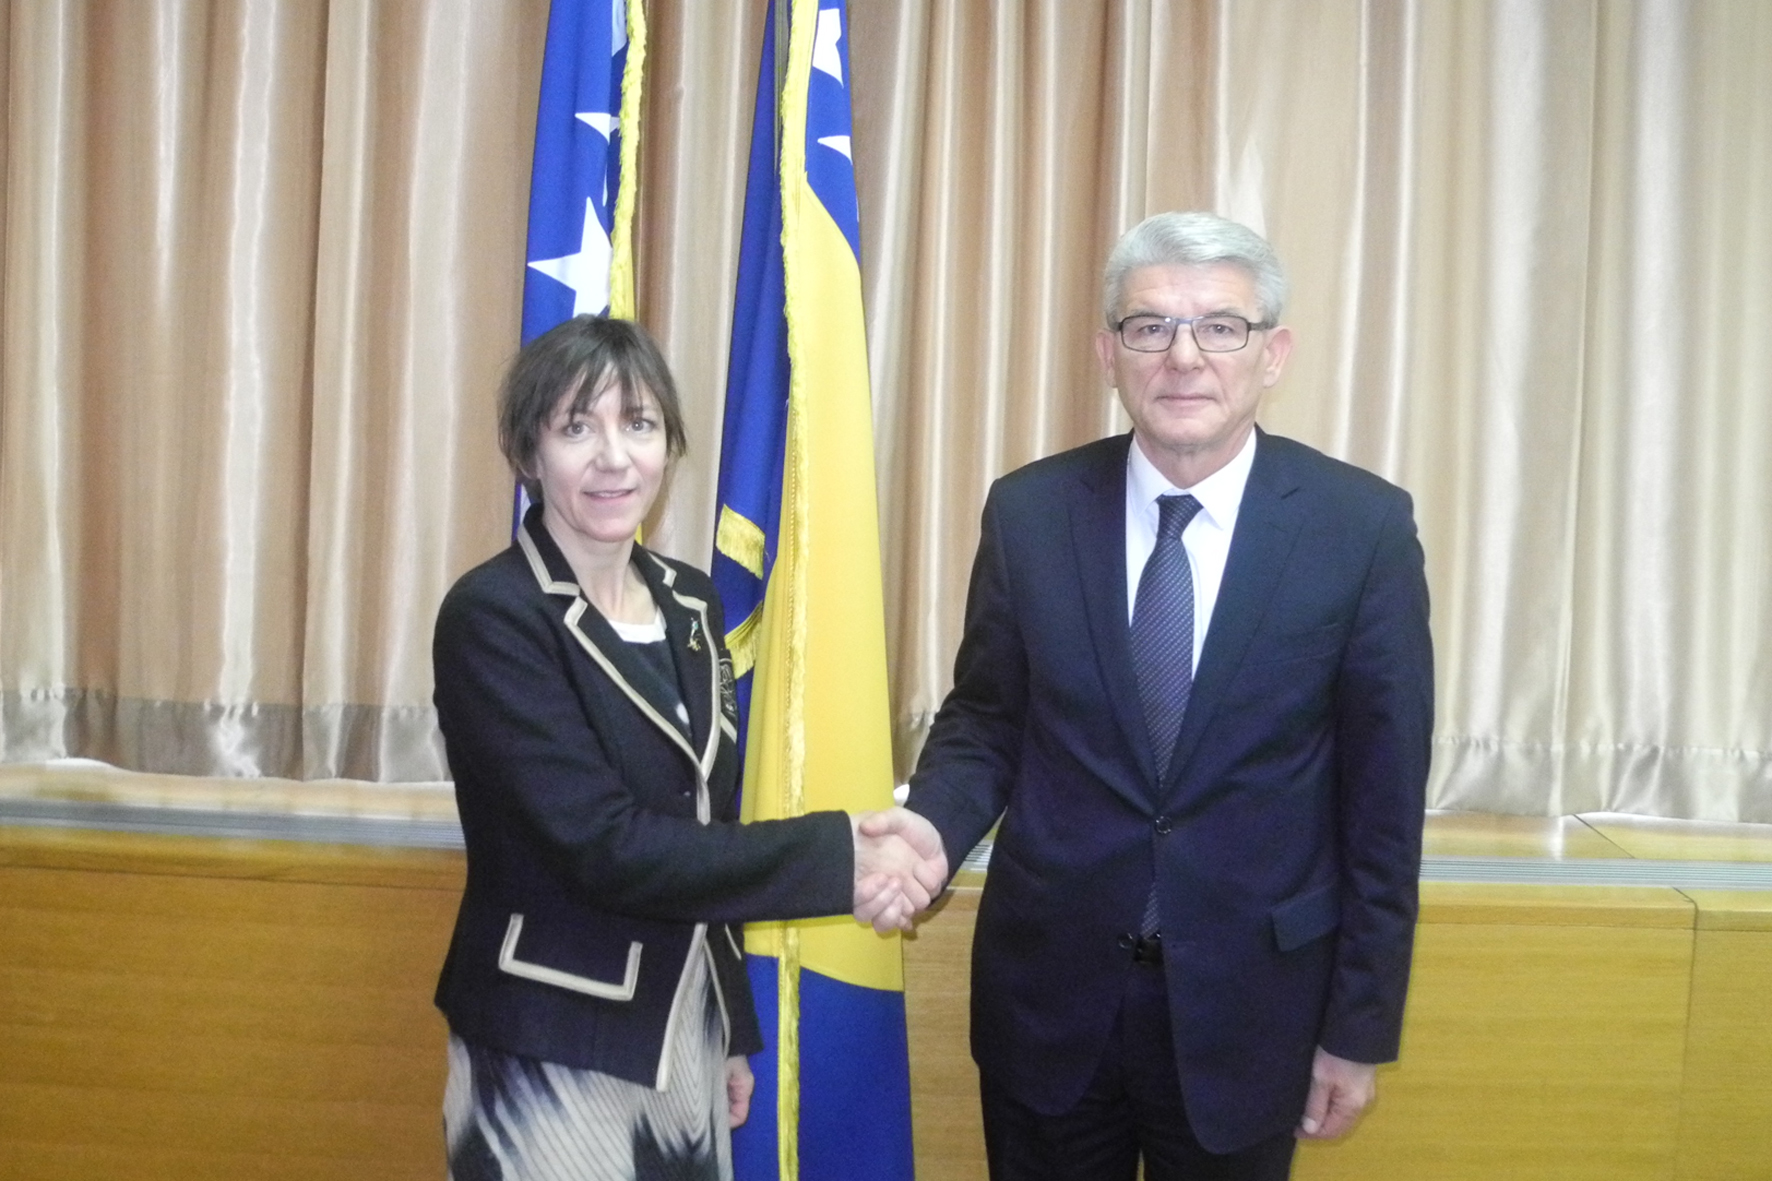 Deputy Speaker of the House of Representatives of the Parliamentary Assembly of BiH, Šefik Džaferović, talked with the Swiss Ambassador to our country